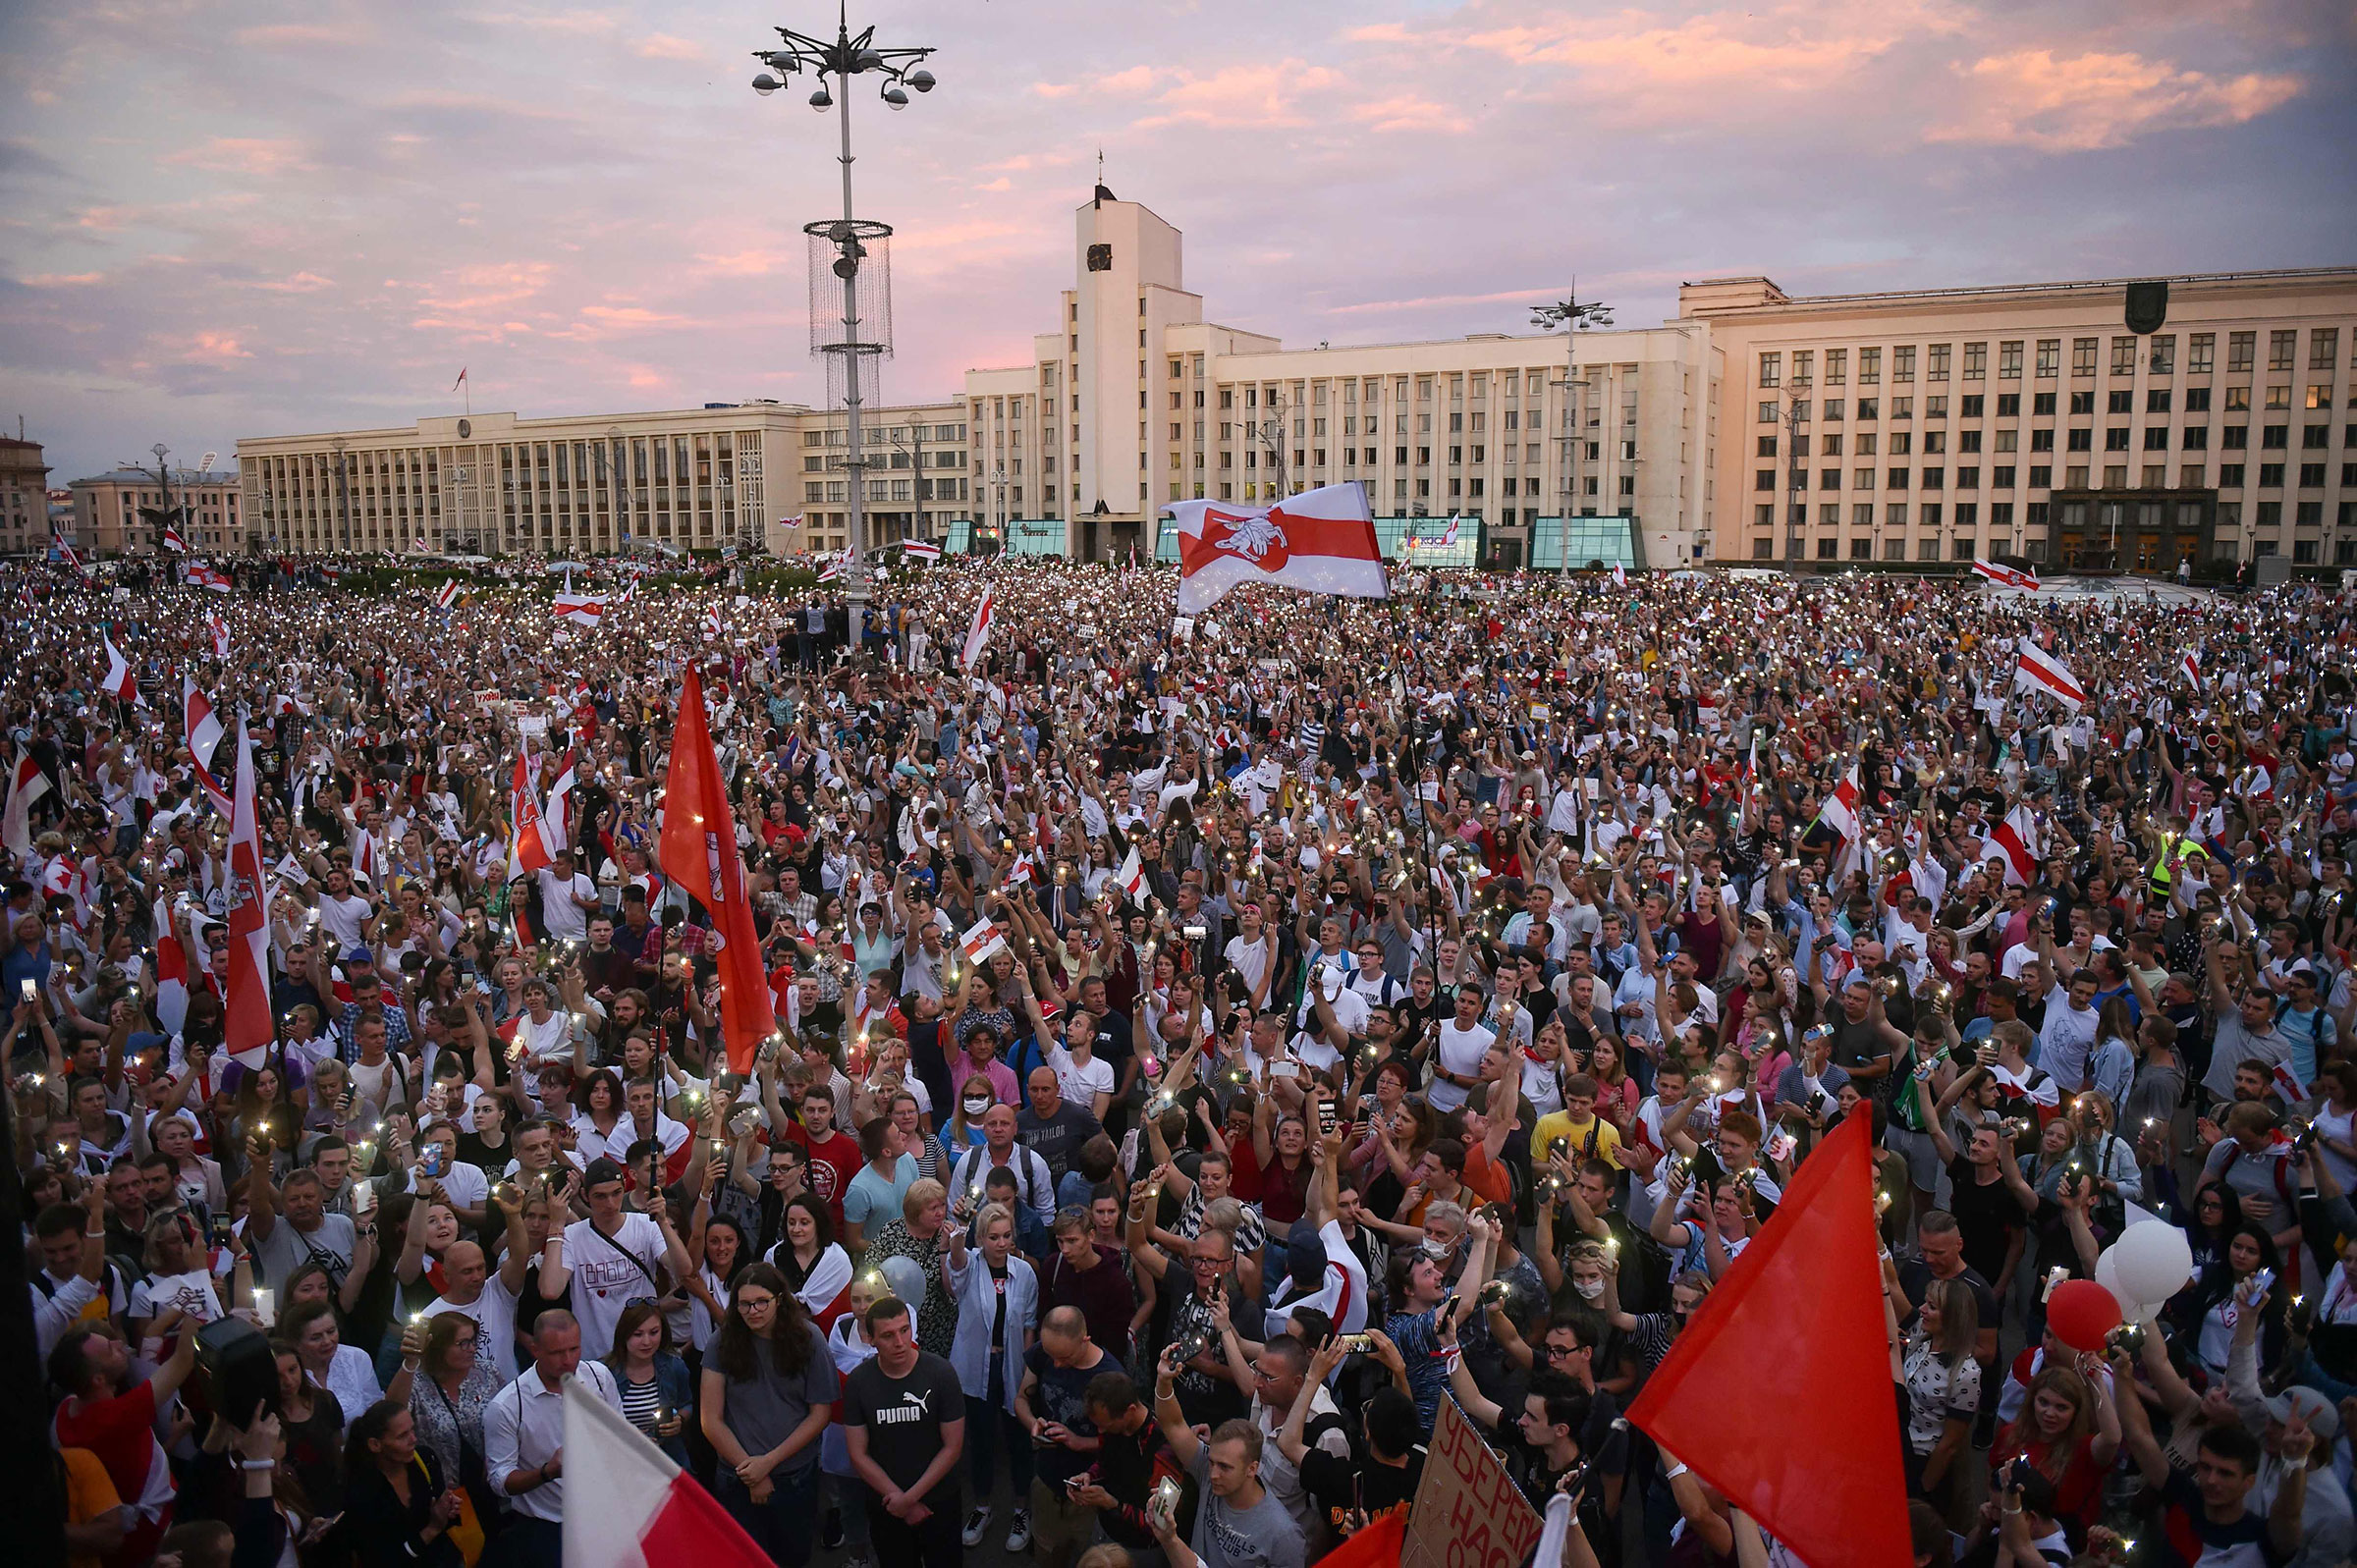 Opposition supporters protest against disputed presidential elections results at Independence Square in Minsk on Aug. 18, 2020.